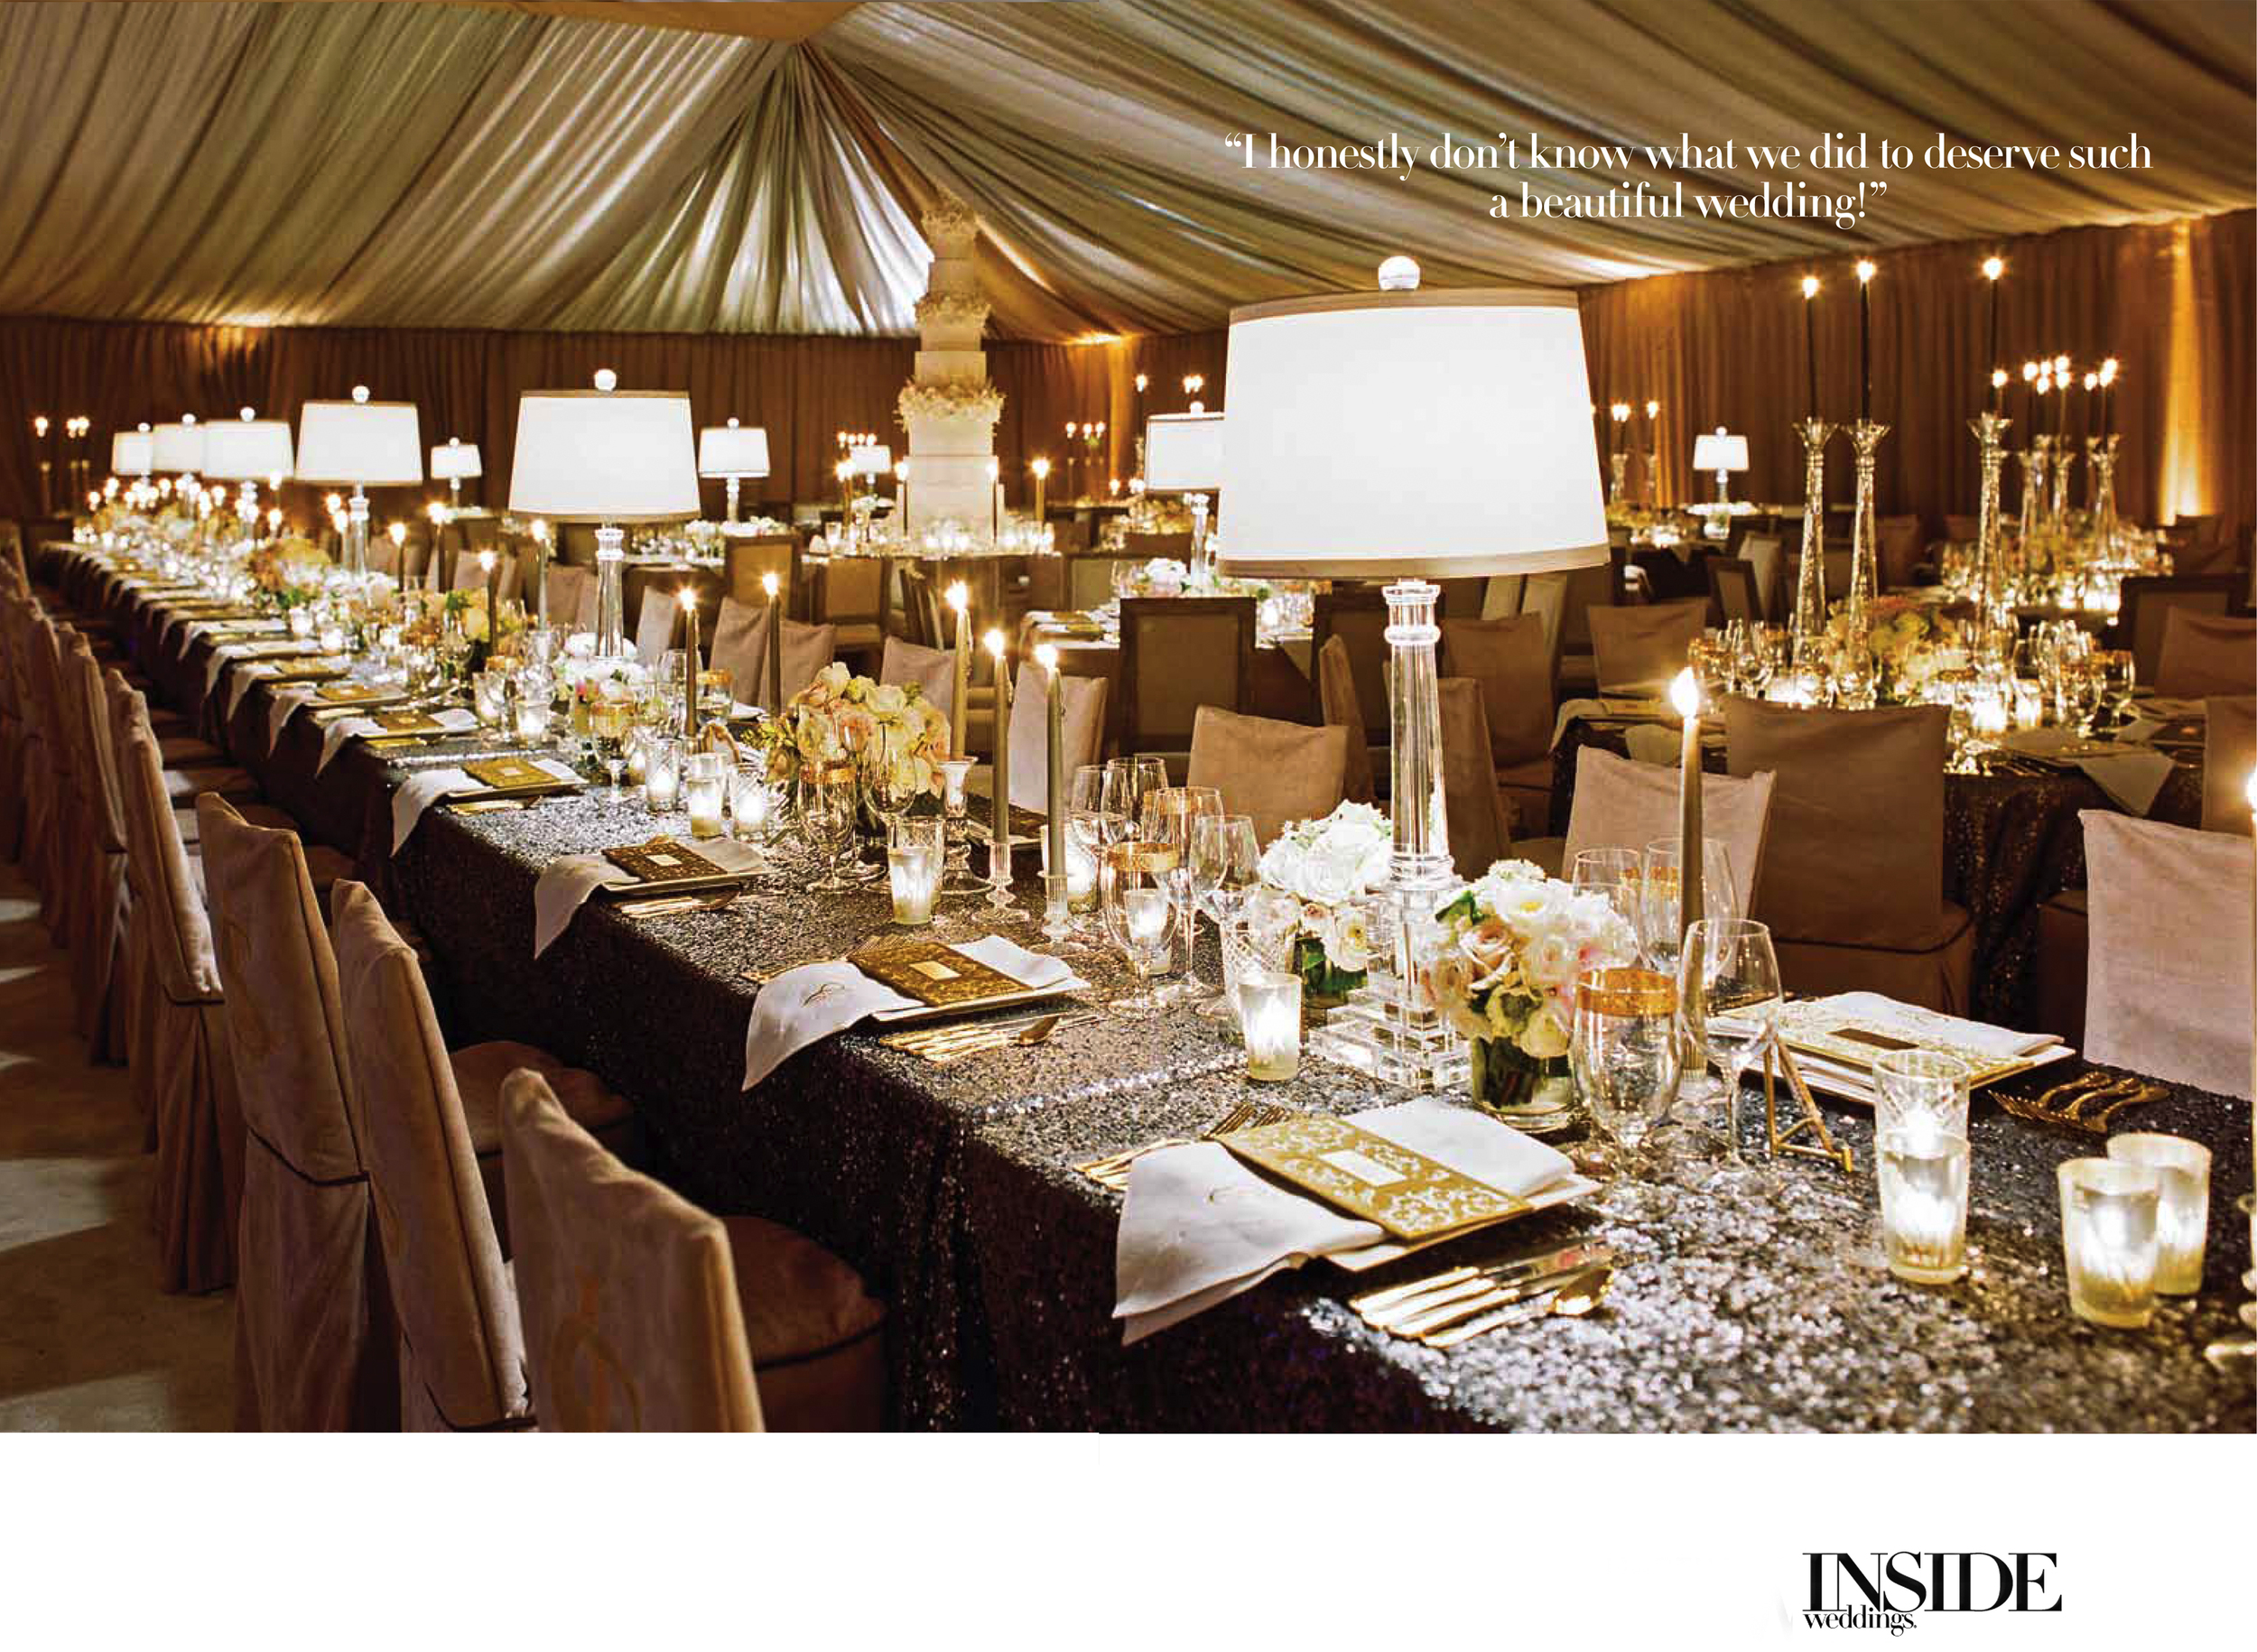 Inside Weddings 7 8.jpg